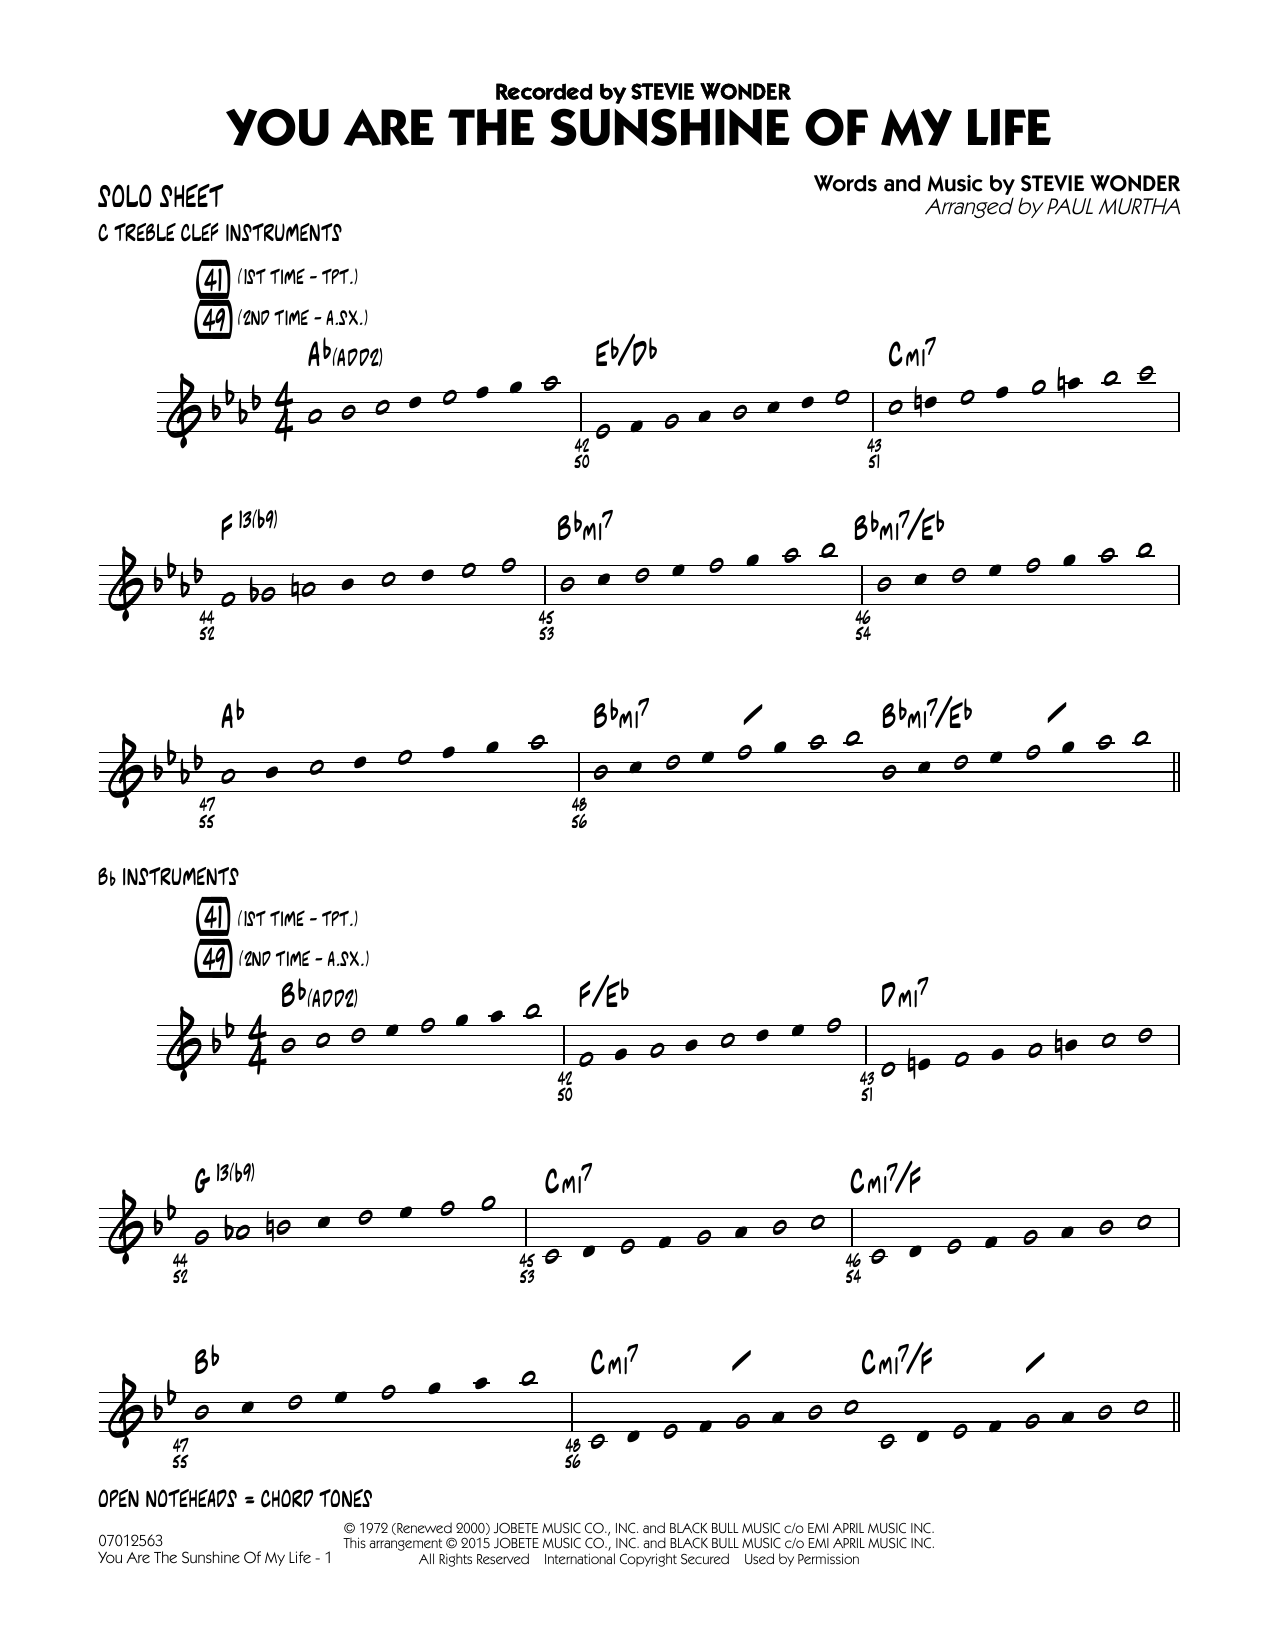 You Are the Sunshine of My Life - Solo Sheet (Jazz Ensemble)